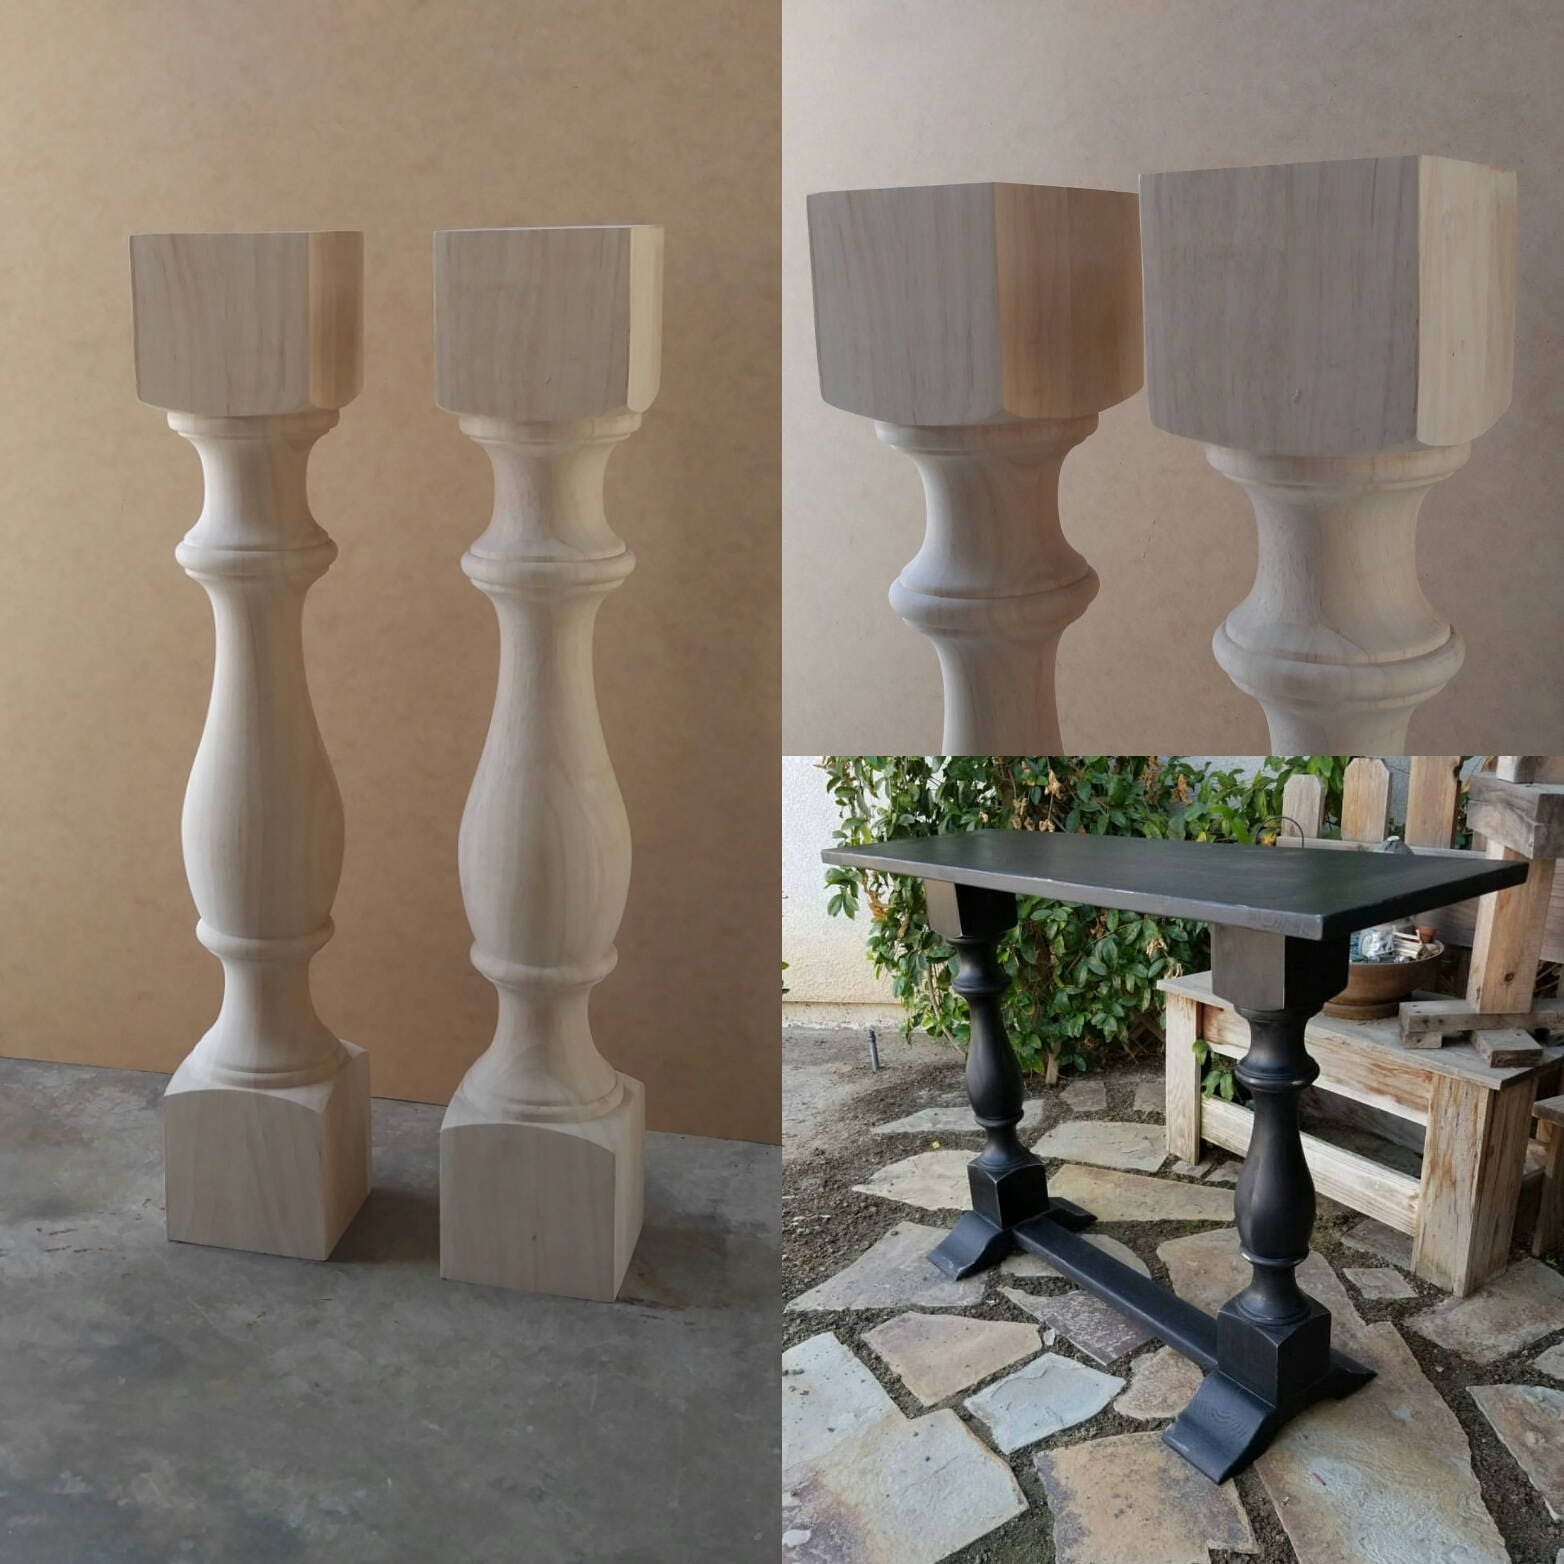 18 Traditional Bench Legs or Coffee Table Legs